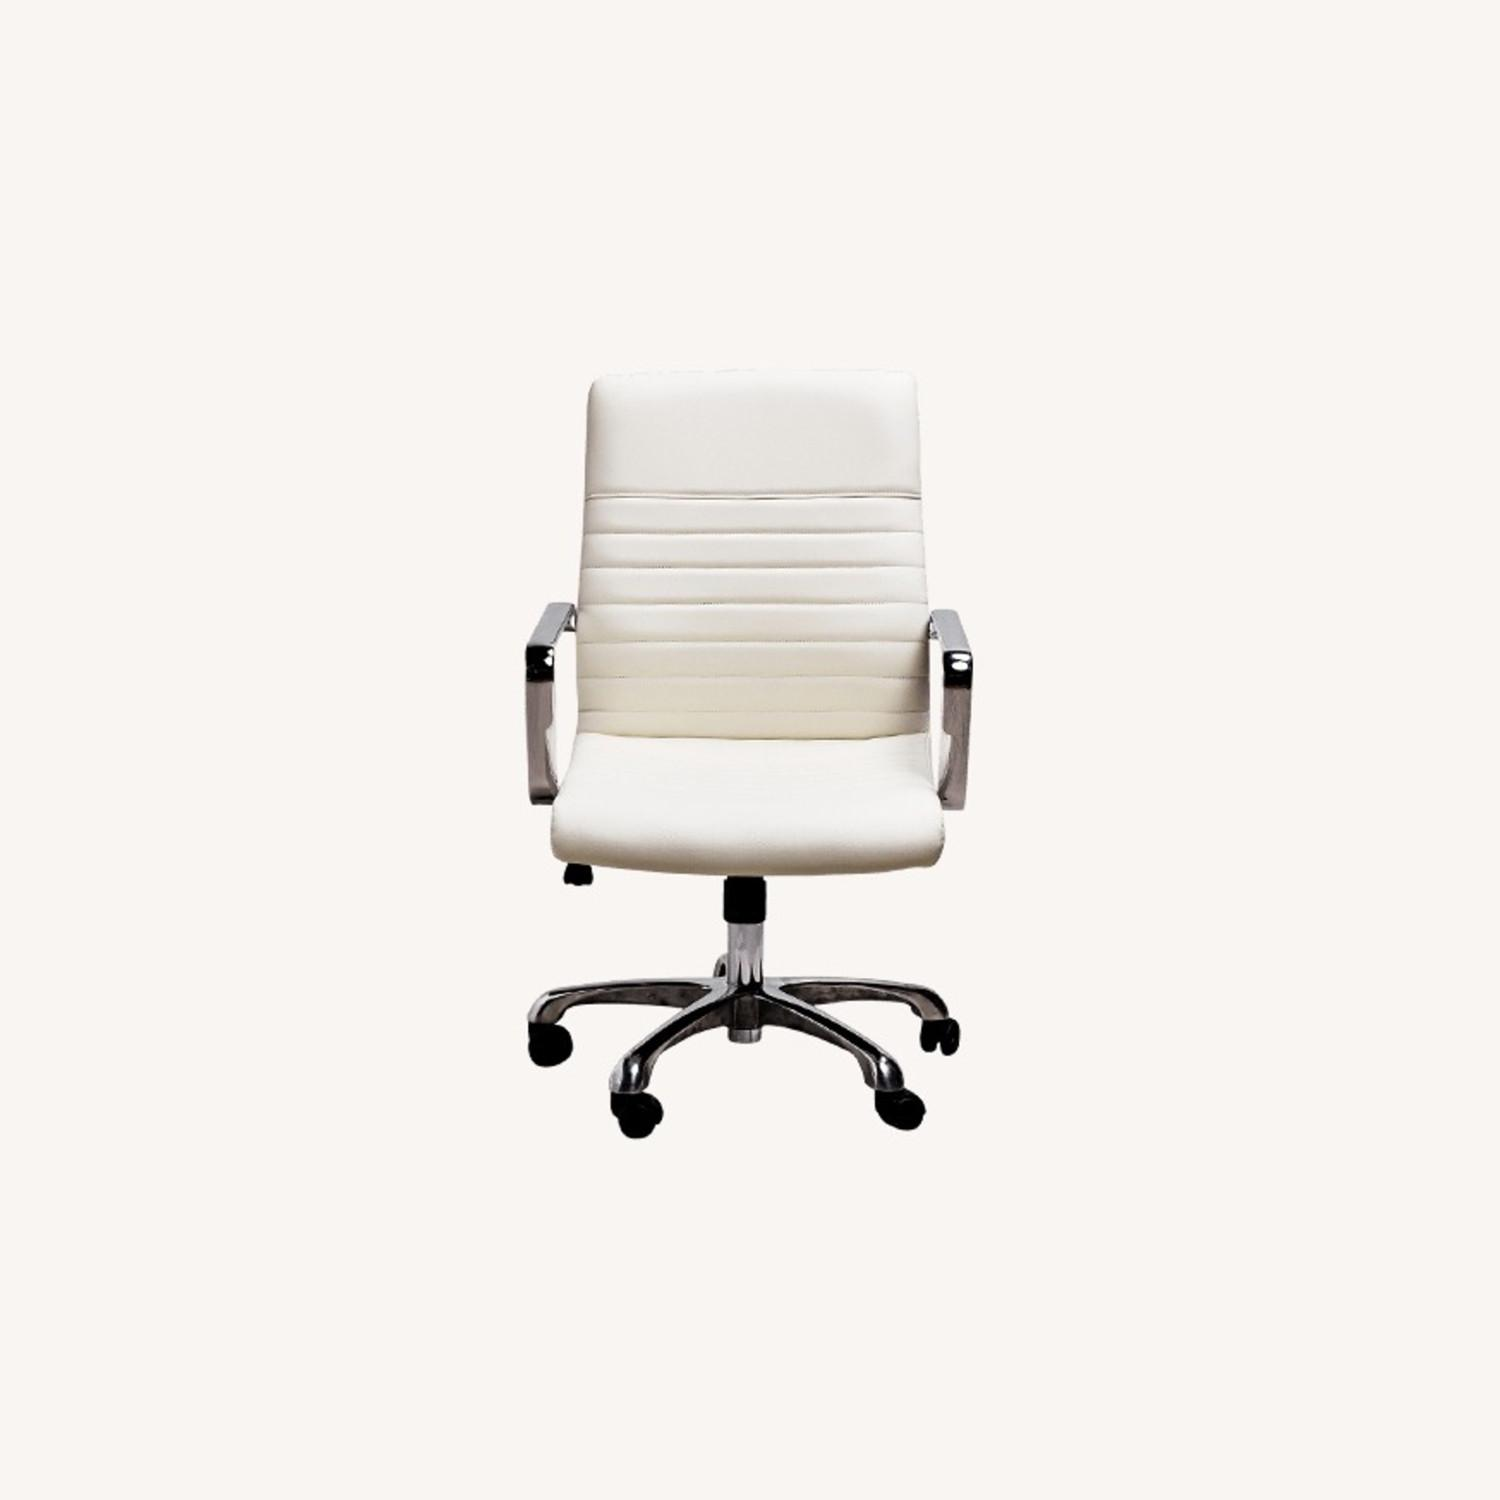 Modway Whimbrel Desk Chair - image-0